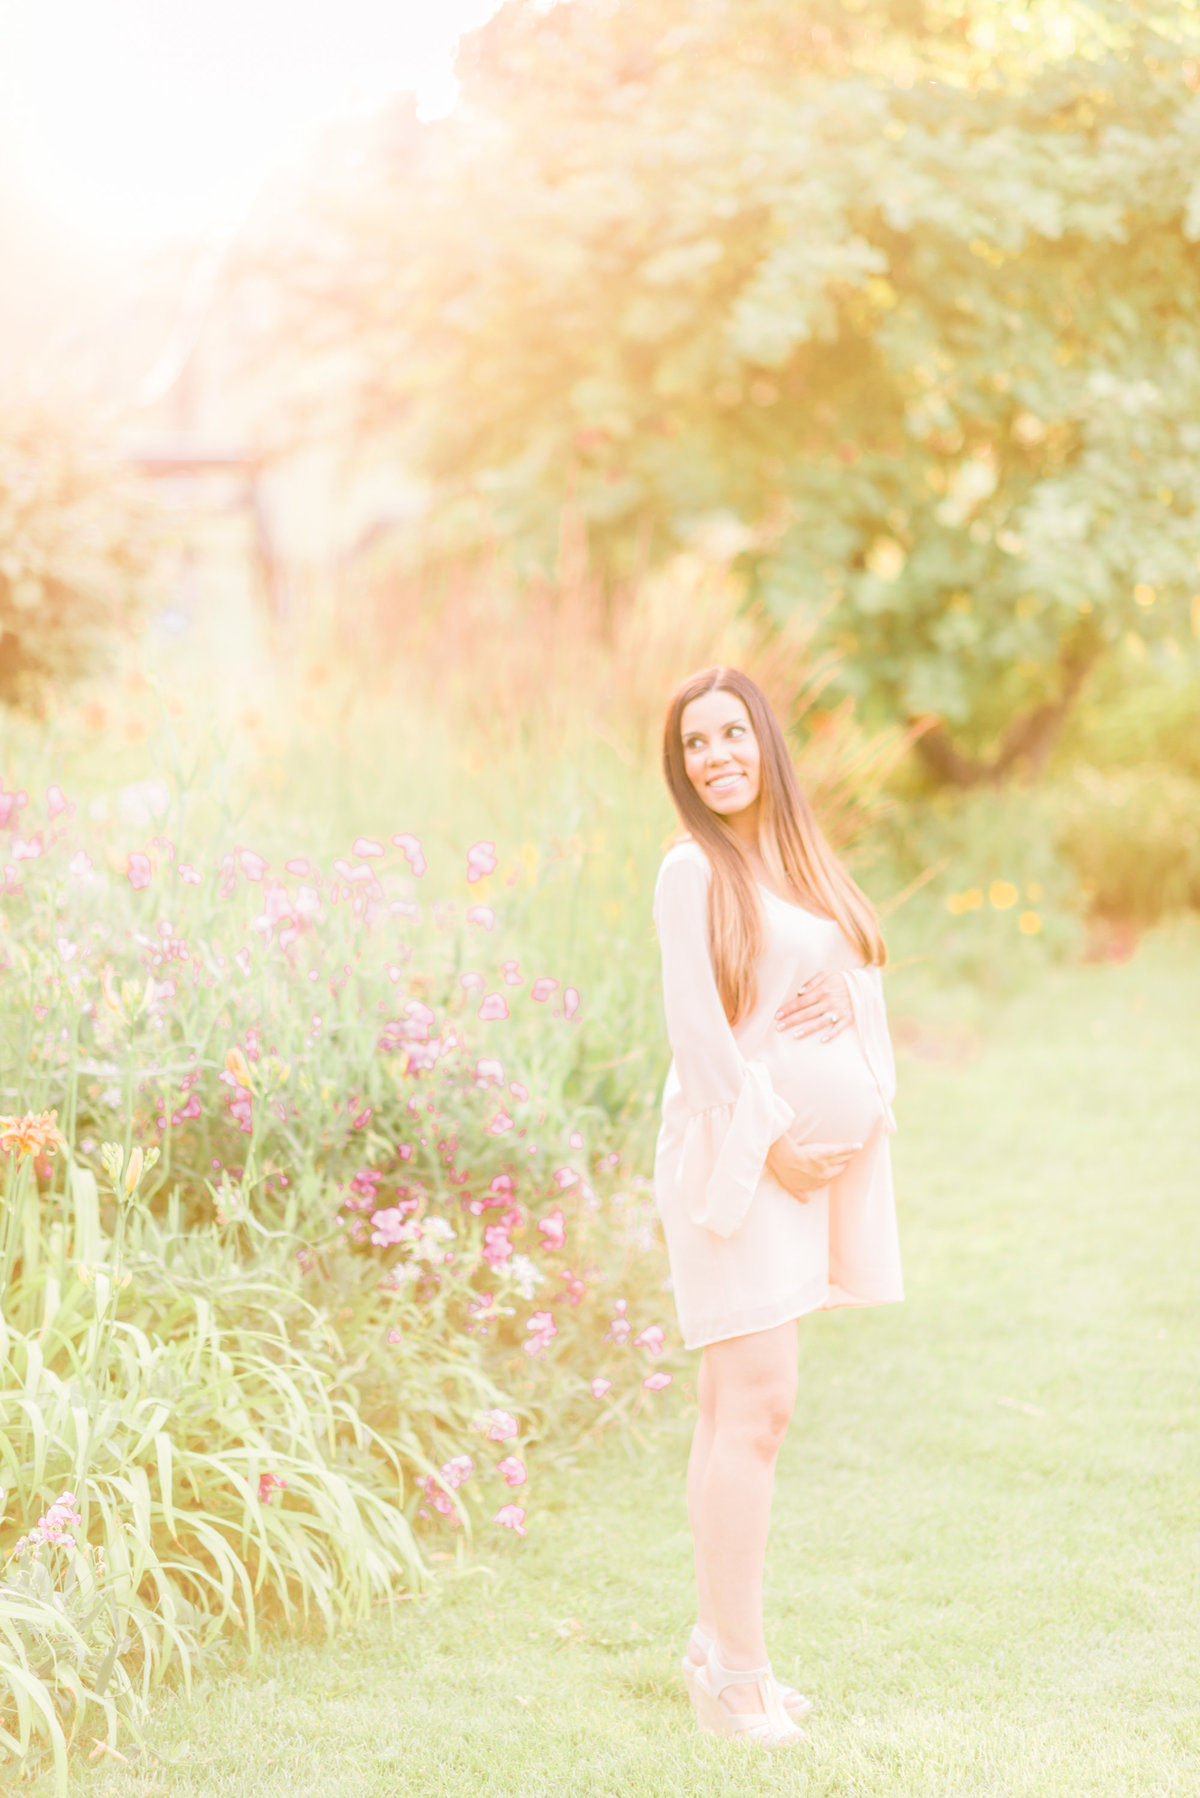 traverse city michigan maternity photographers